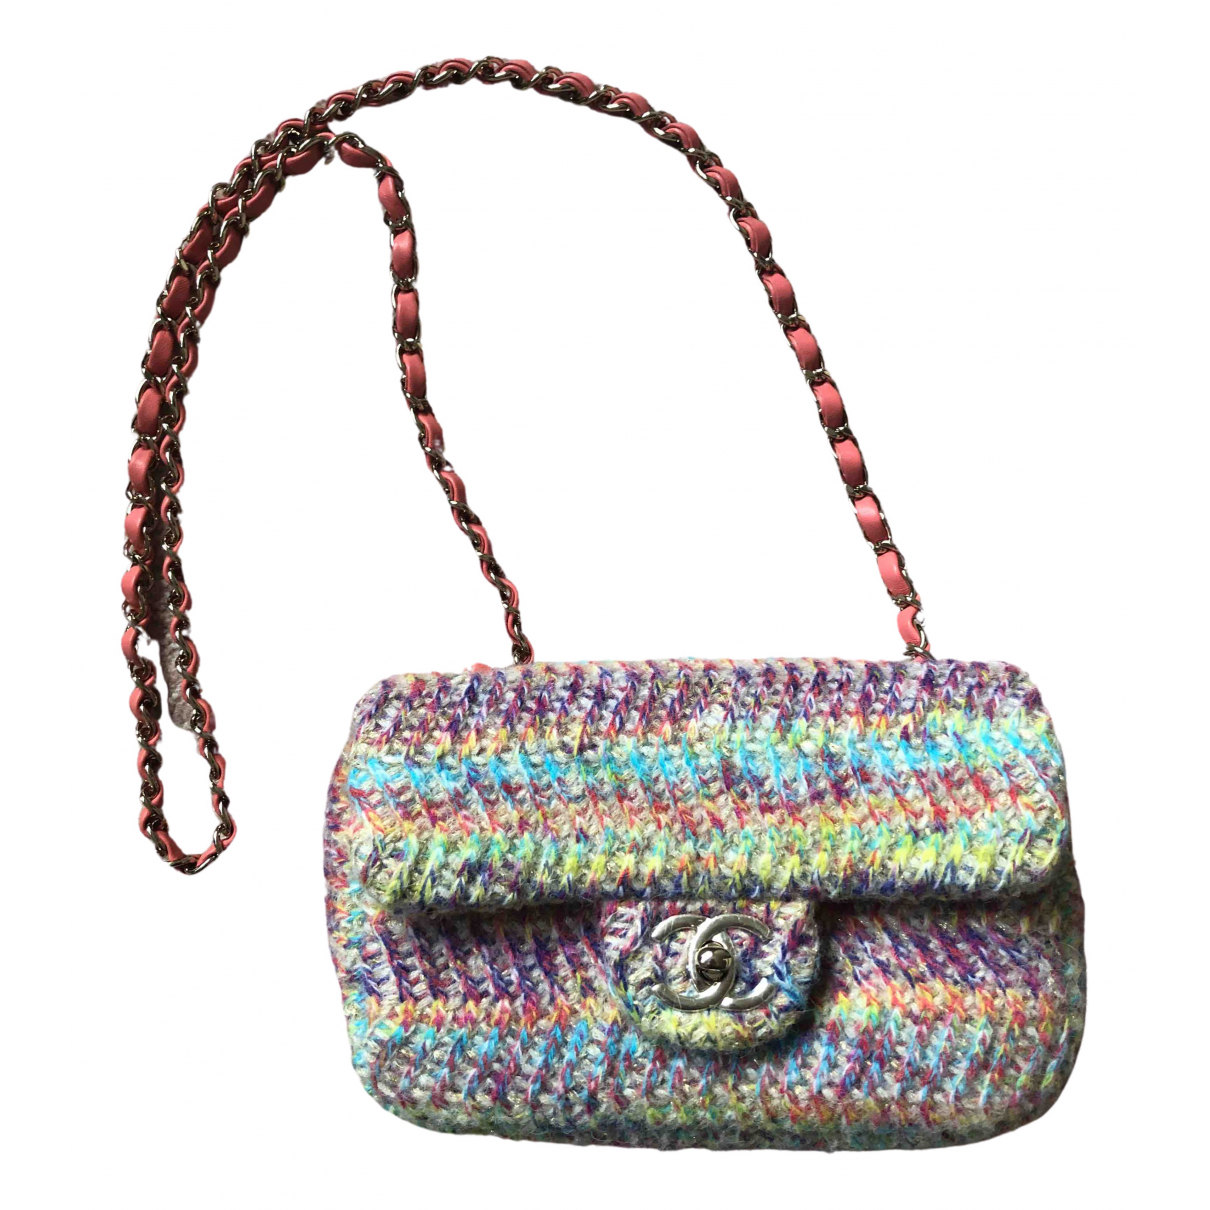 Chanel Timeless/Classique Handtasche in  Bunt Wolle